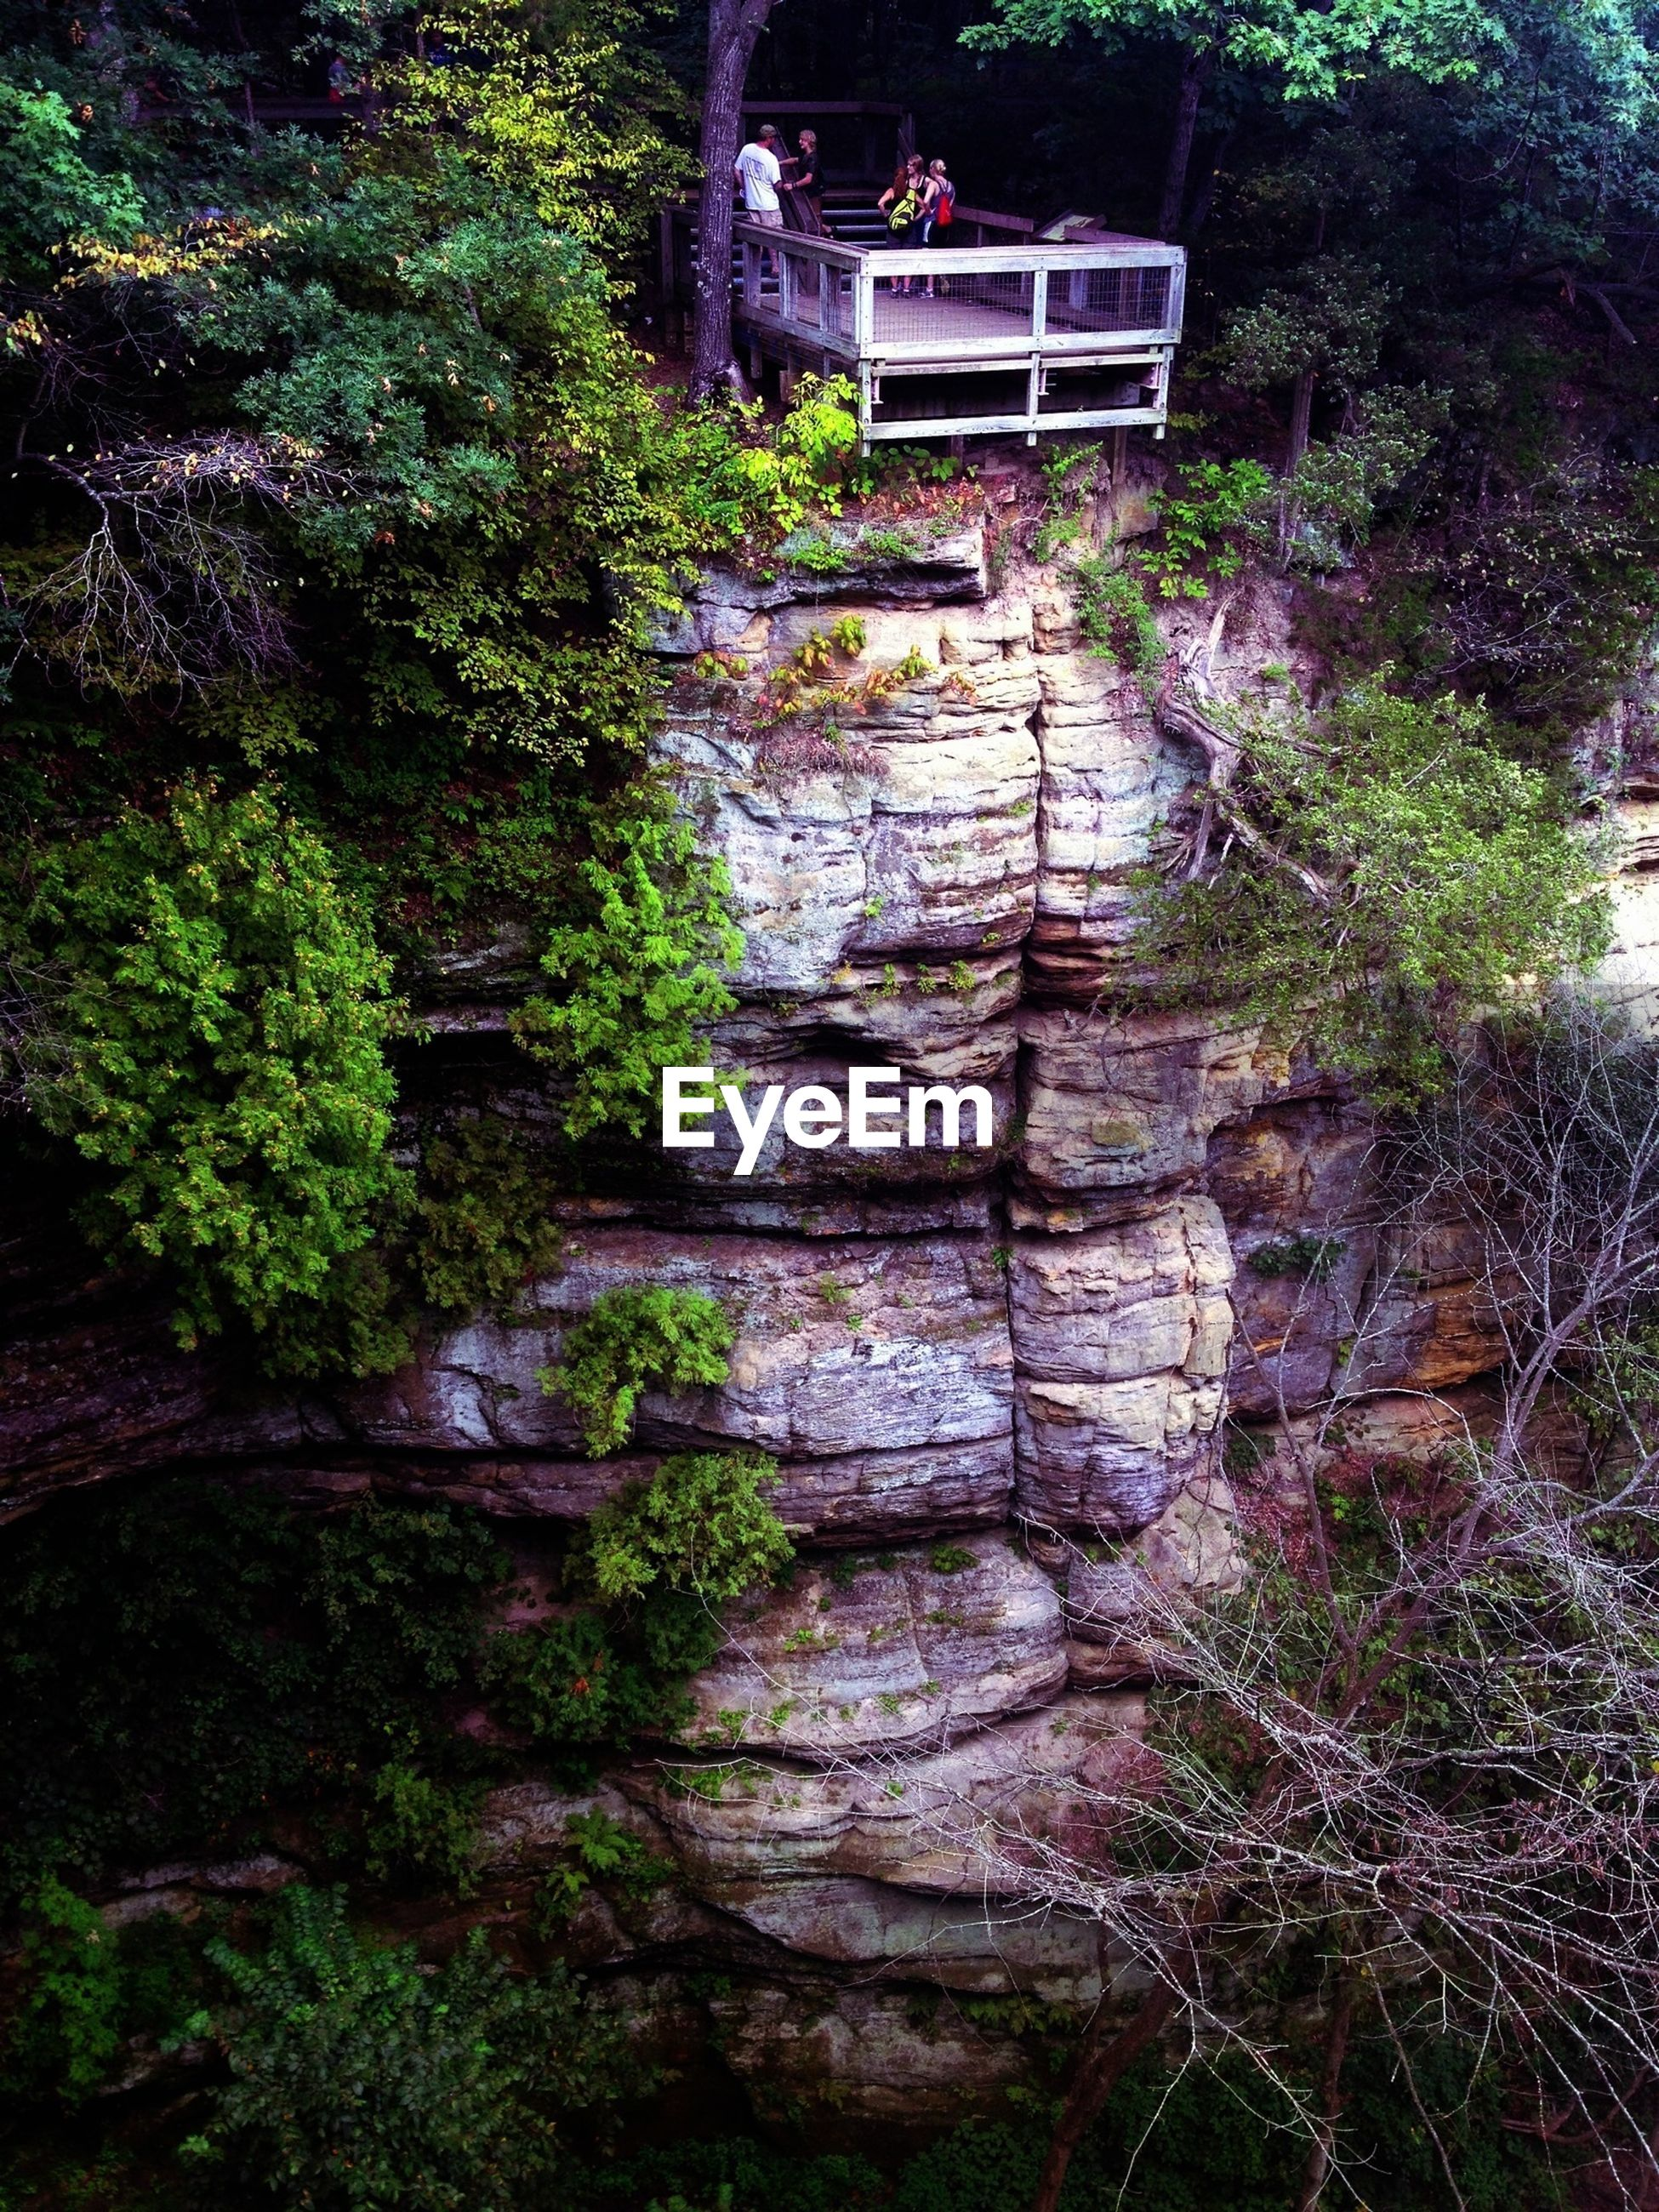 tree, plant, growth, built structure, steps, architecture, forest, green color, house, nature, building exterior, outdoors, no people, sunlight, day, tranquility, high angle view, bush, lush foliage, rock - object